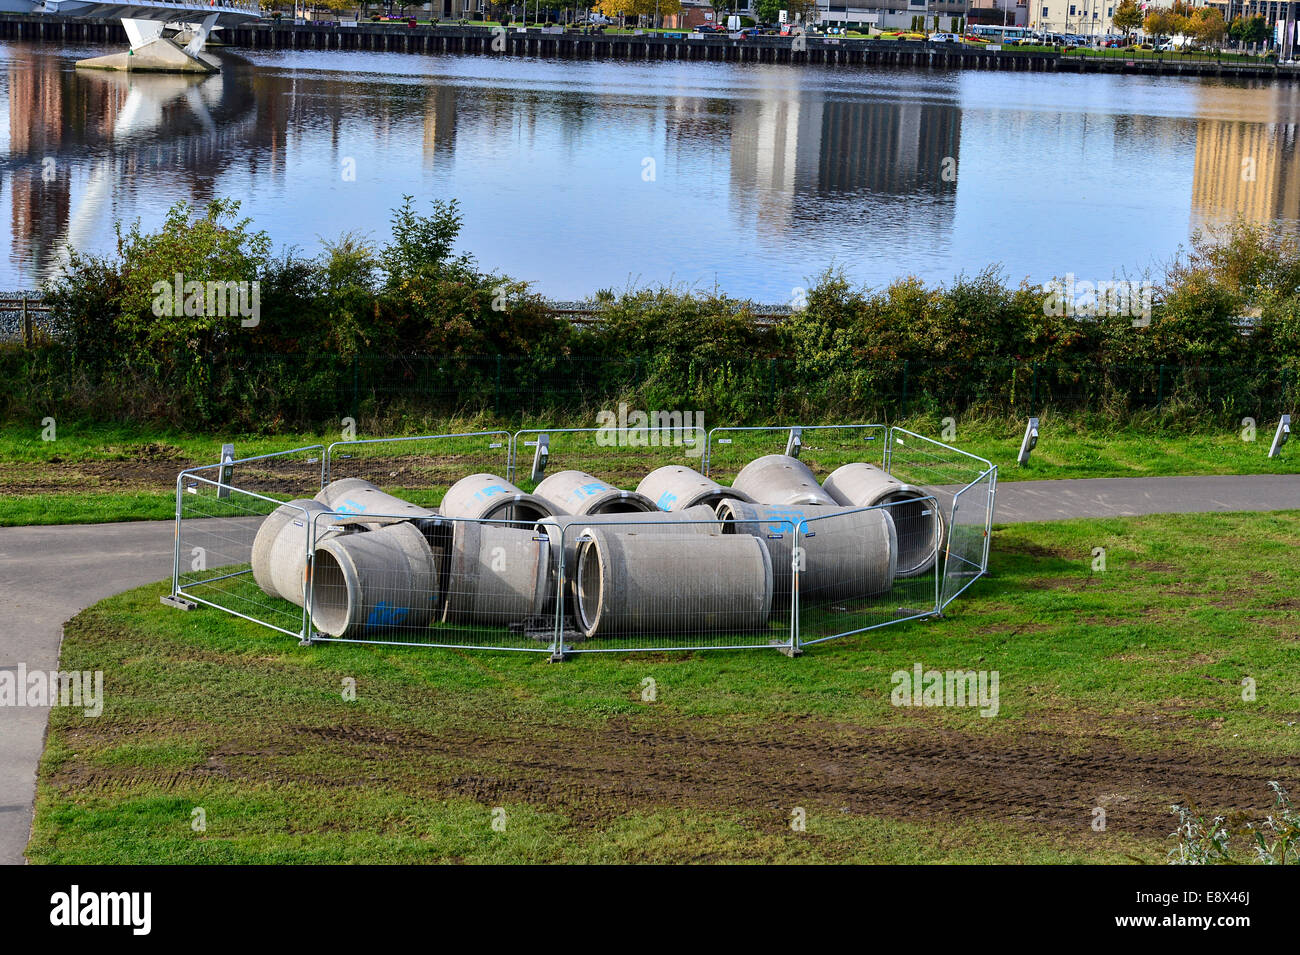 Stock Photo - Concrete sewer pipes. ©George Sweeney /Alamy - Stock Image